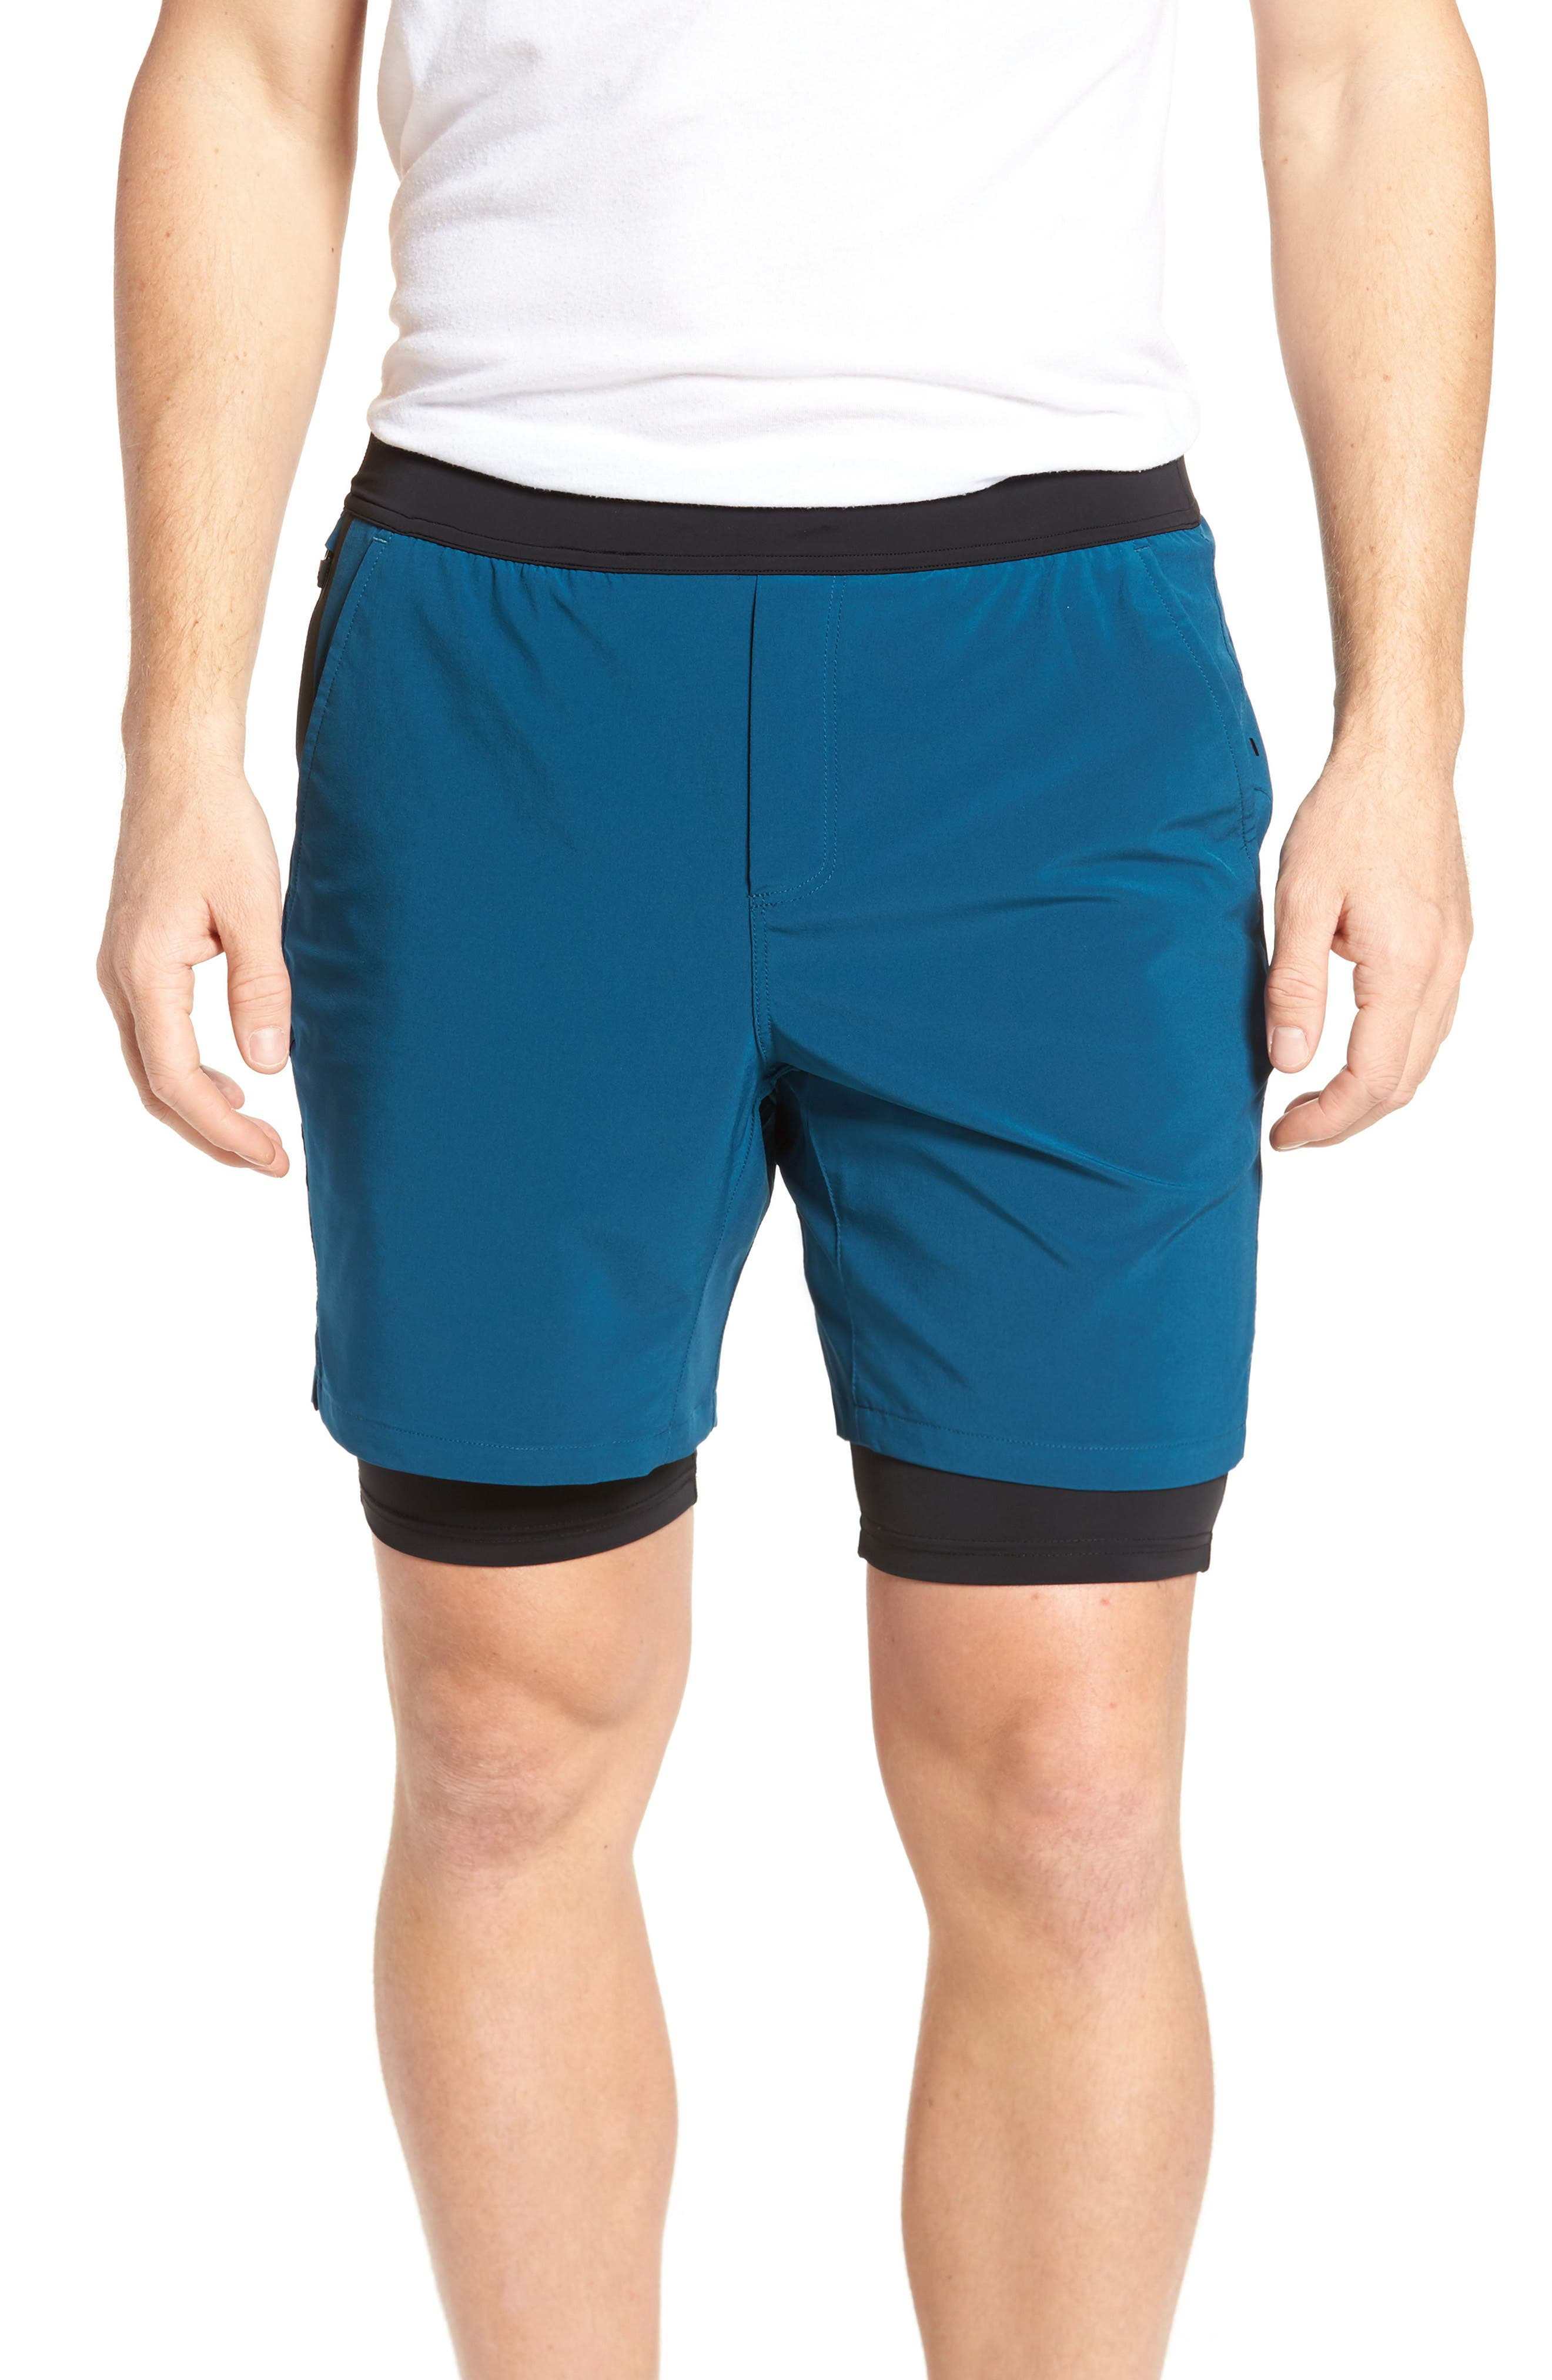 Interval Athletic Shorts,                             Main thumbnail 1, color,                             Dark Teal